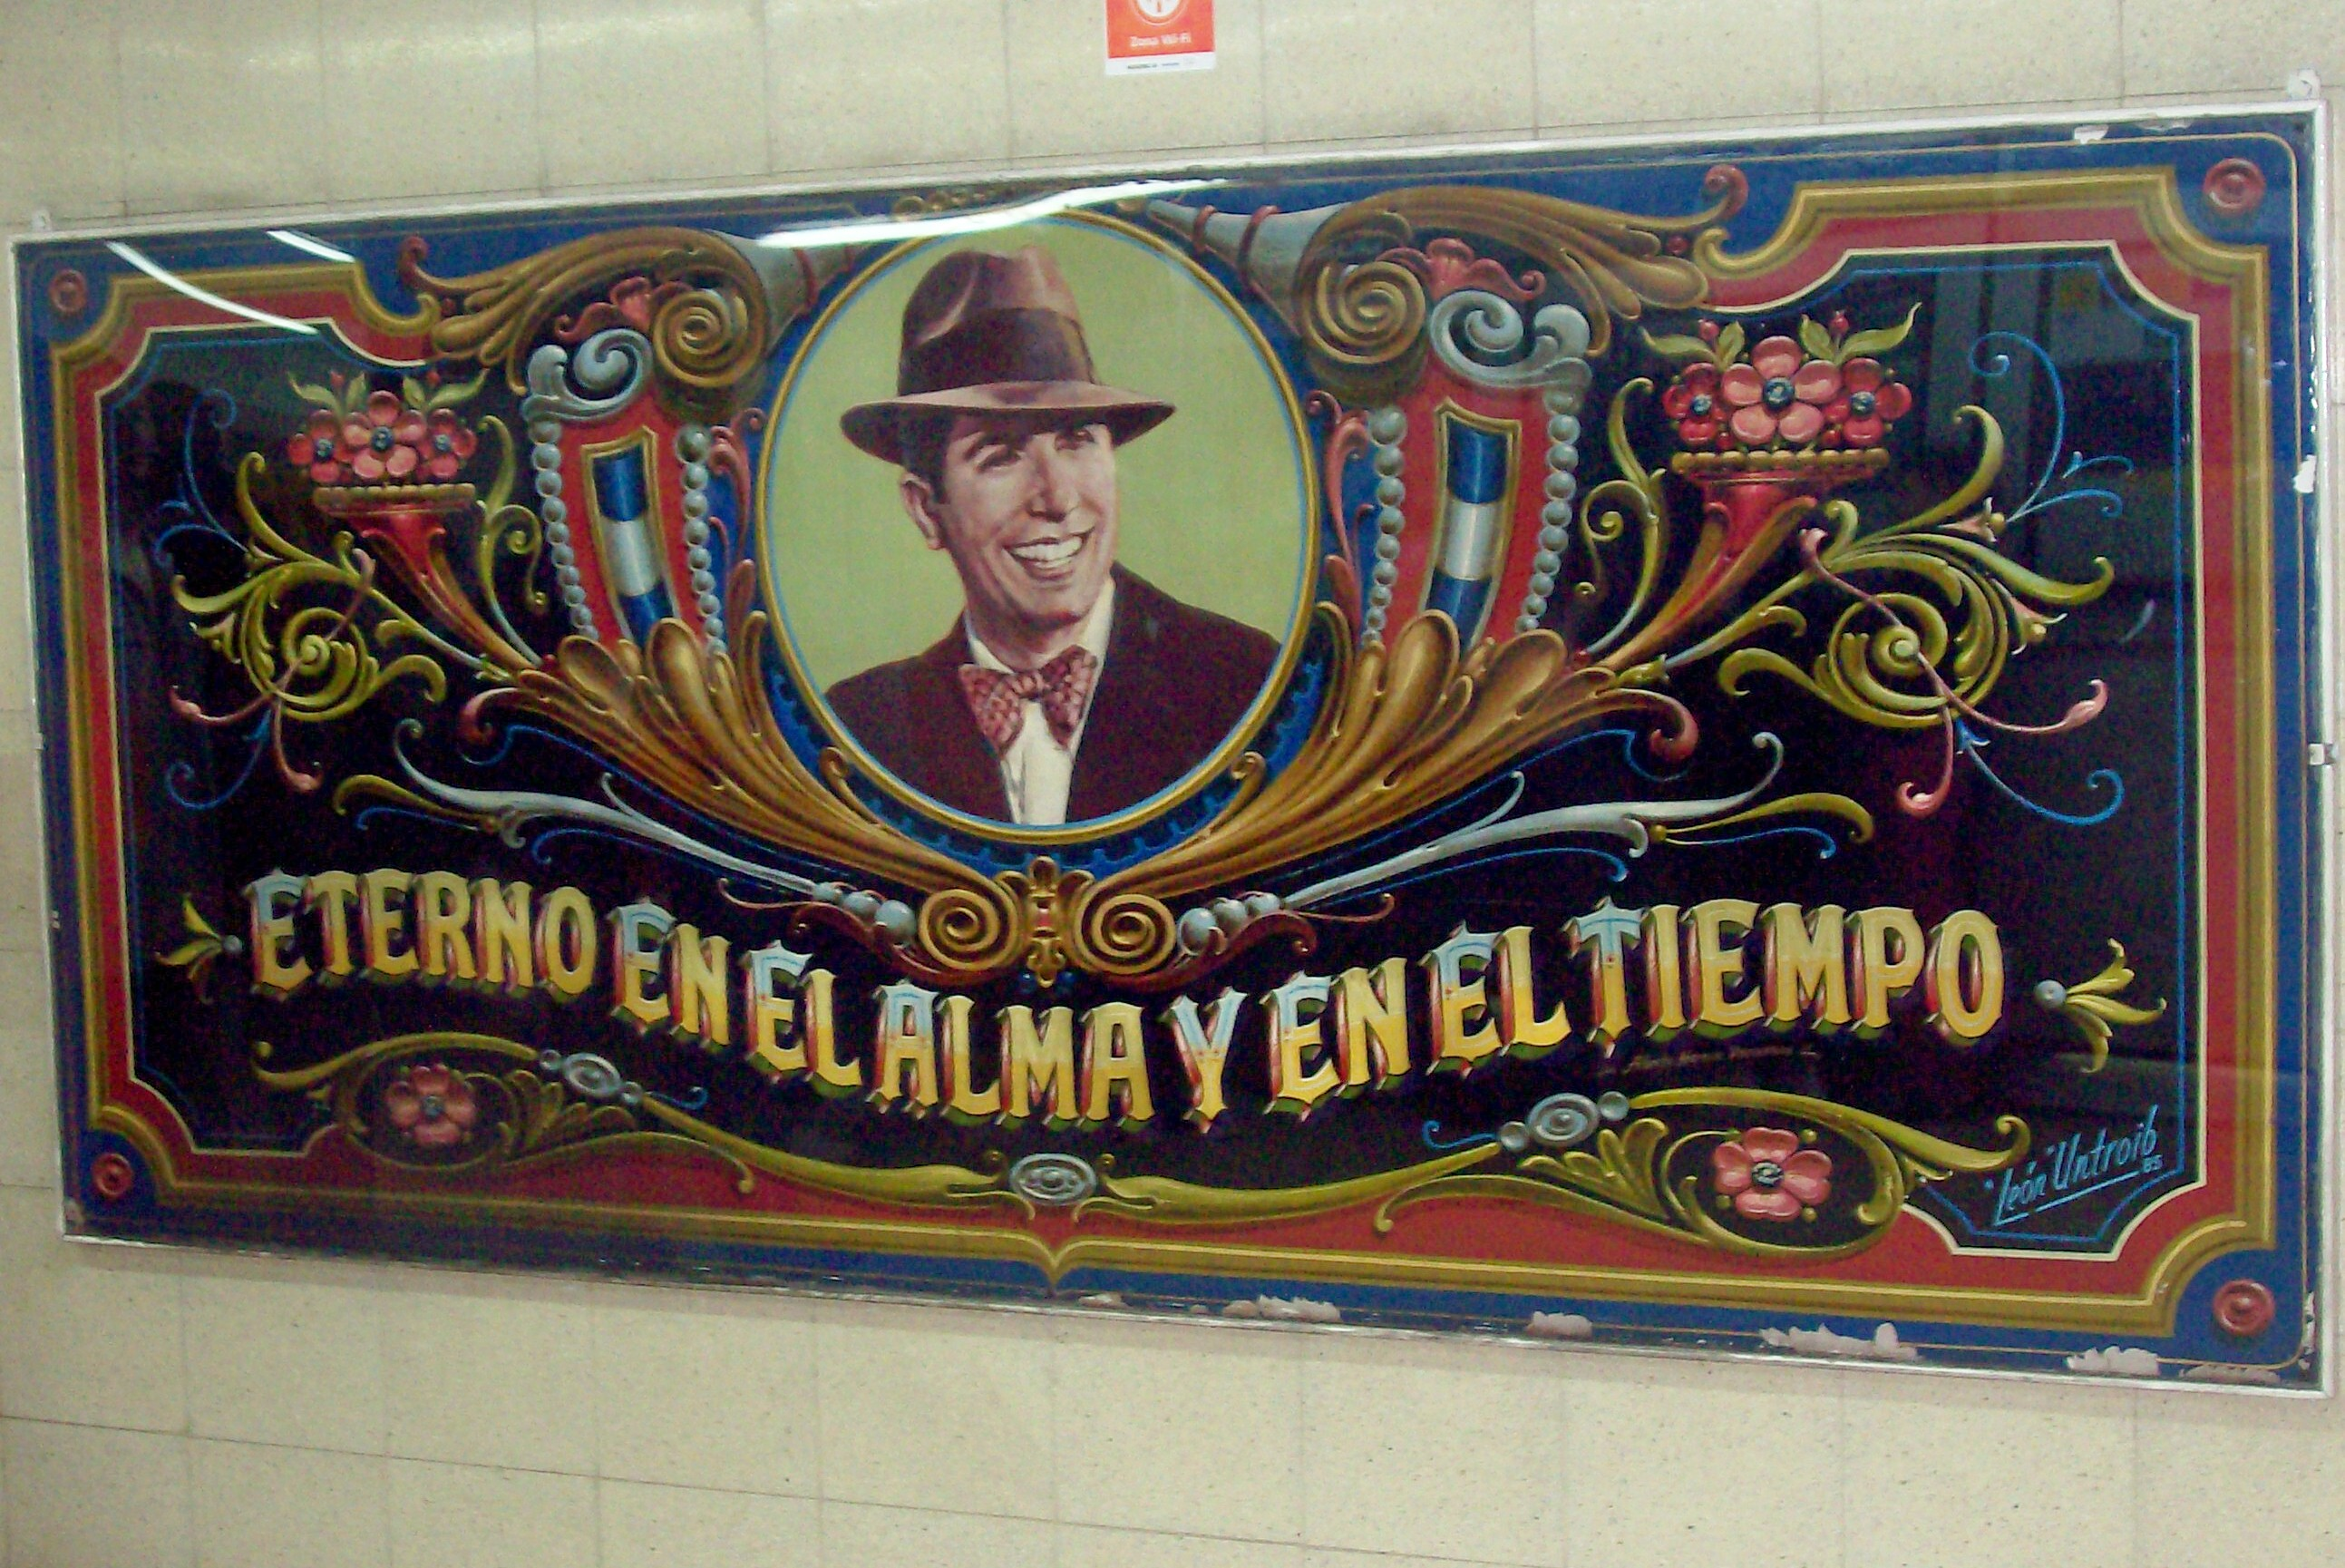 http://upload.wikimedia.org/wikipedia/commons/b/b8/Fileteado_Gardel_Abasto_Untroib.jpg